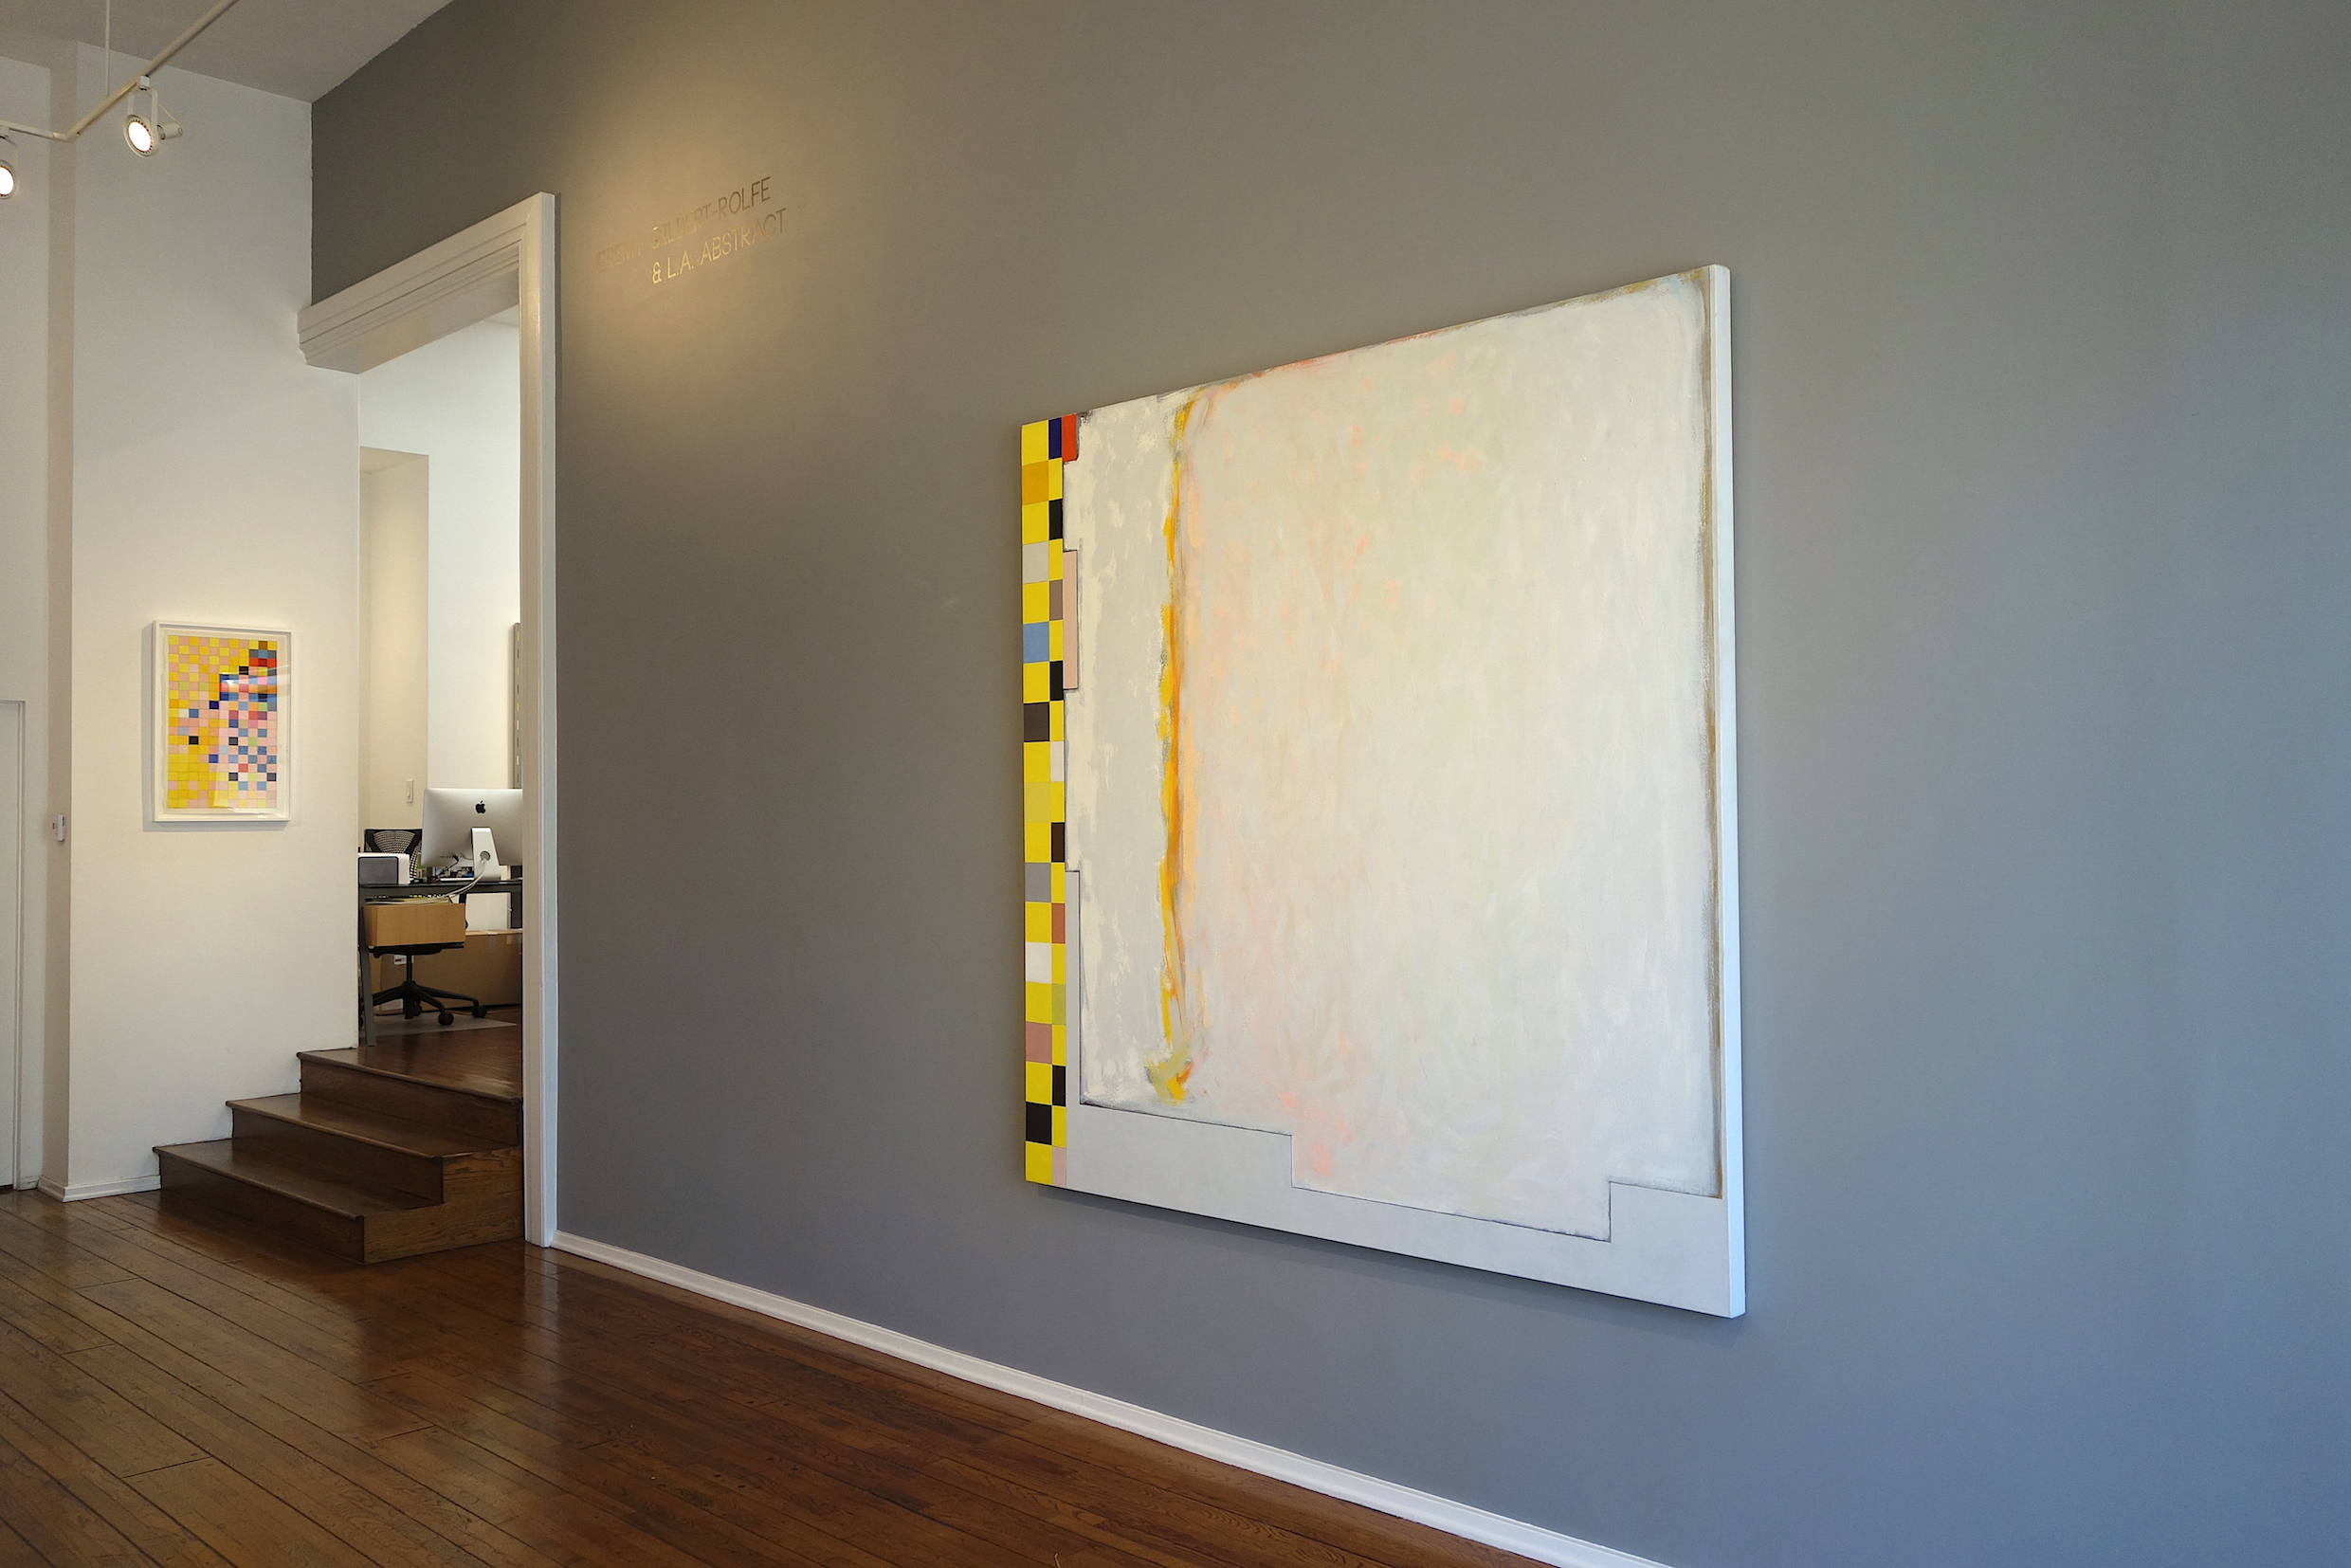 Jeremy Gilbert-Rolfe & LA Abstract, Louis Stern Fine Arts, Installation Shot (Grid, 2012; Grey Genevieve II, 1994)